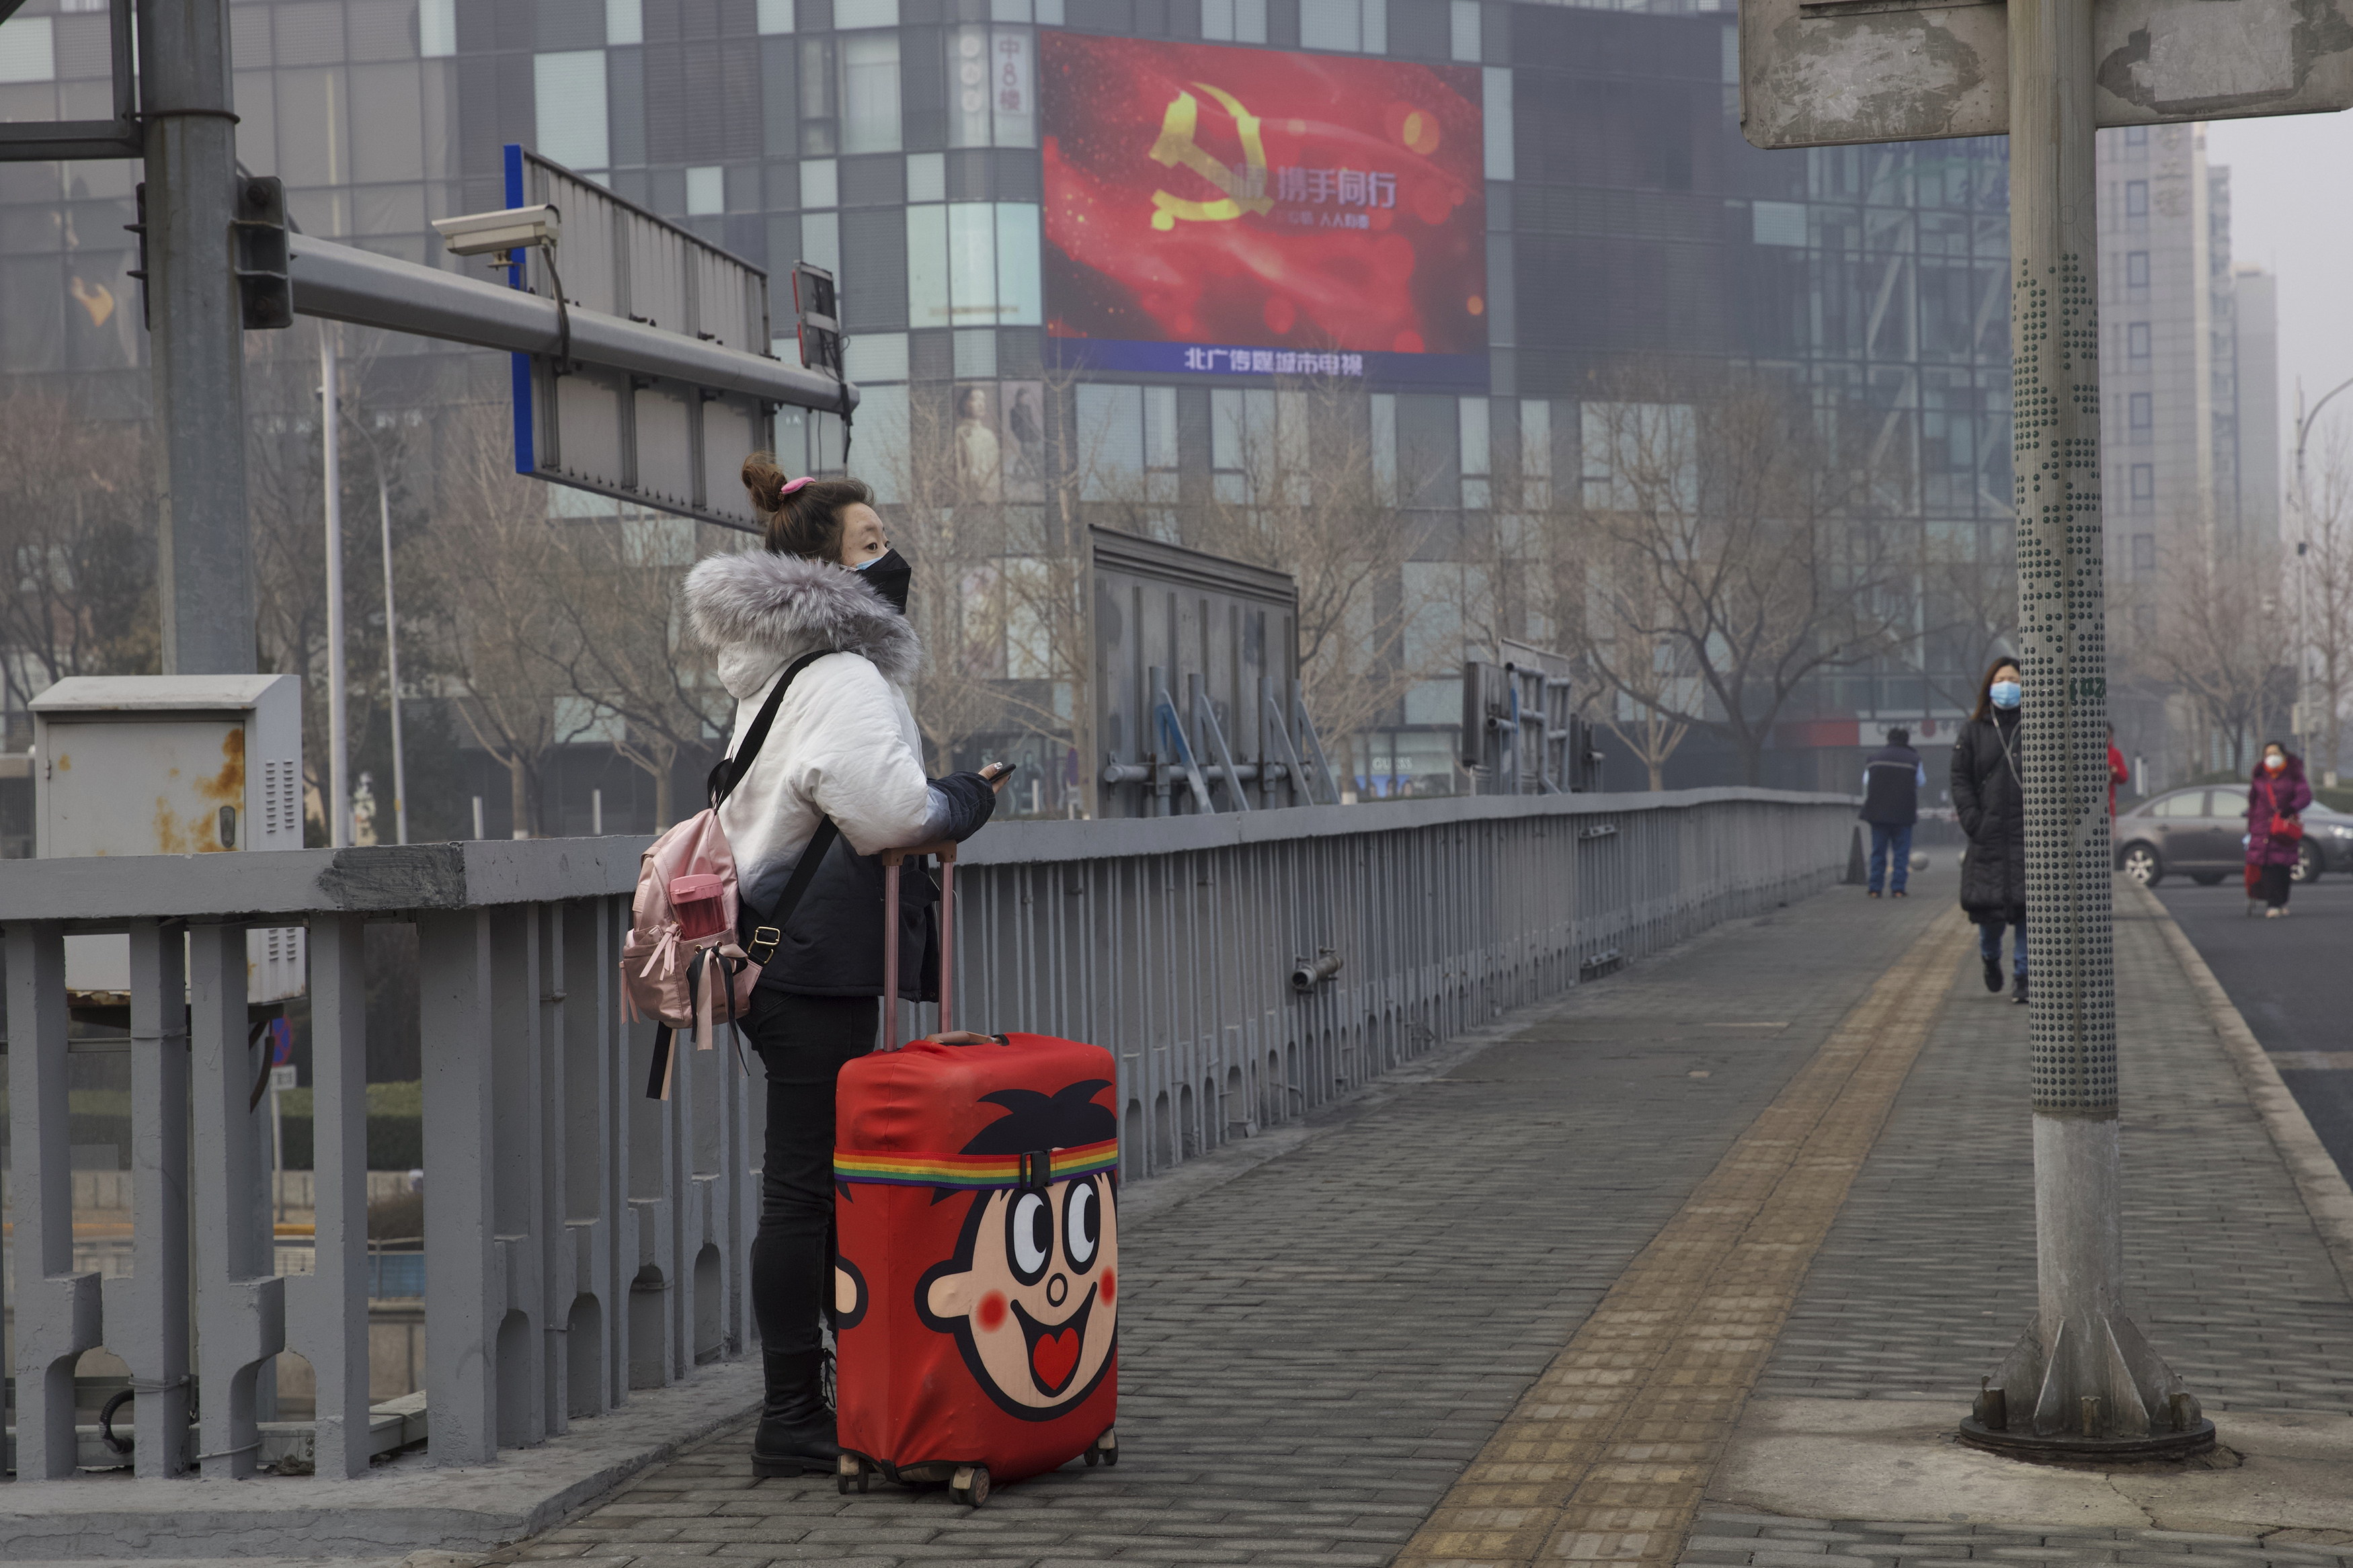 A traveler stands on a bridge near a display showing government propaganda in the fight against the COVID-19 viral illness in Beijing, China  on Thursday